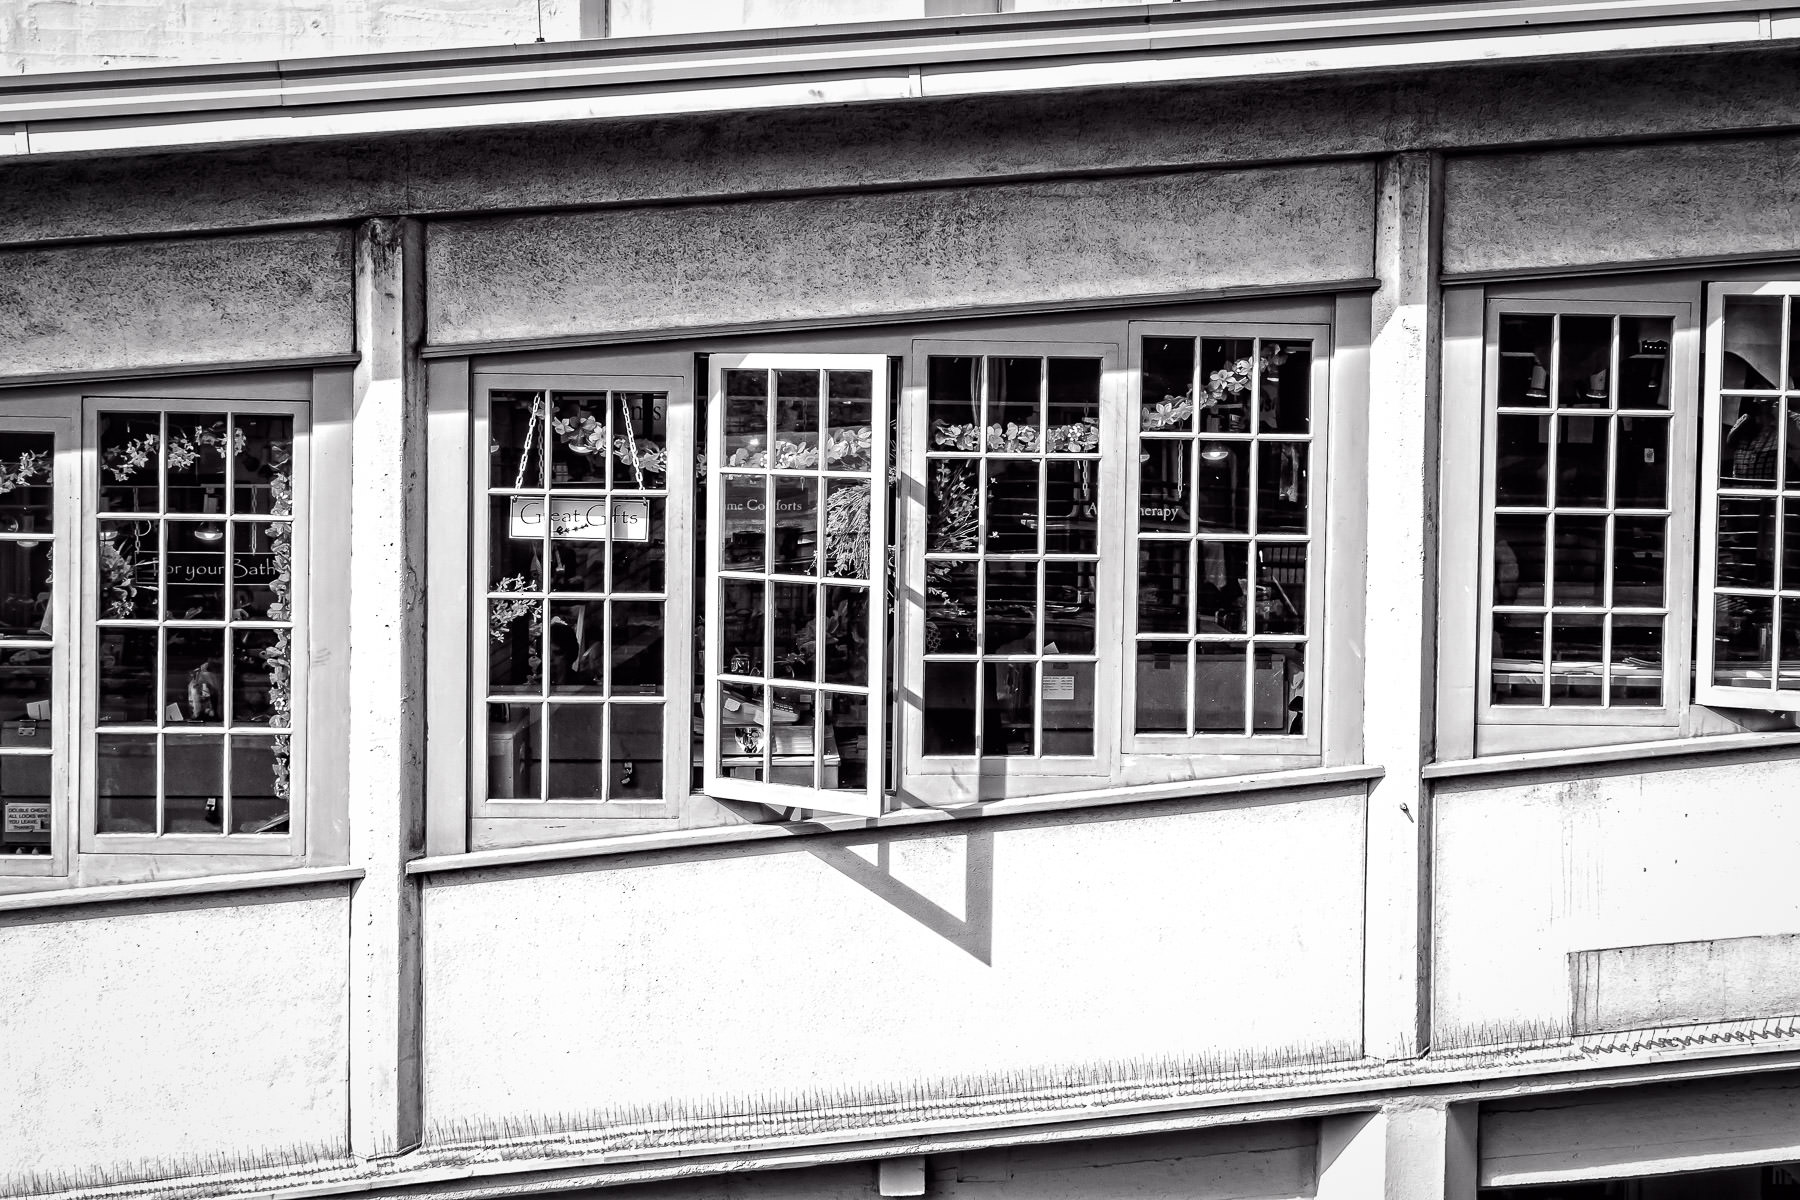 Windows built into a sloped part of a building at Seattle's Pike Place Market.